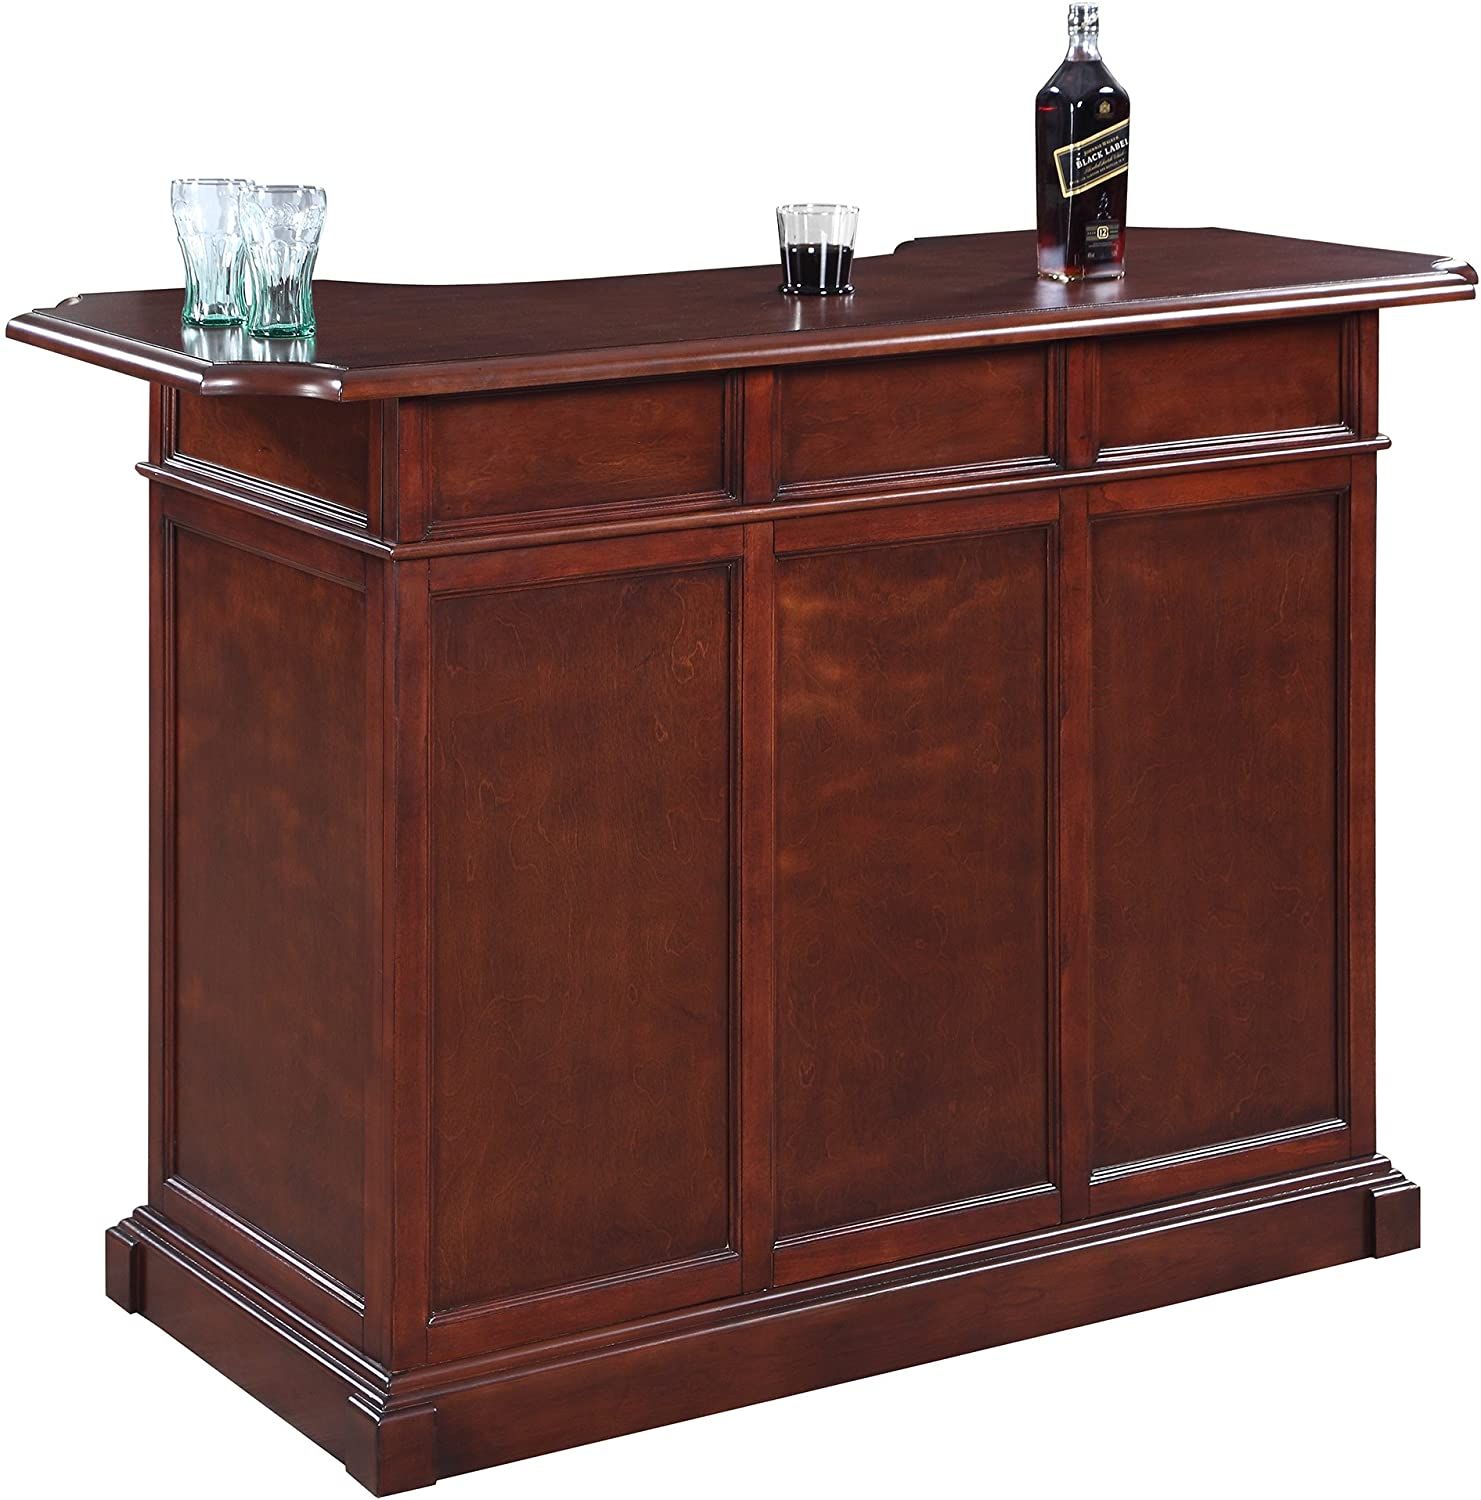 Amazon Com Hathaway Ridgeline 5 Home Bar Set With Storage Walnut Sports Outdoors